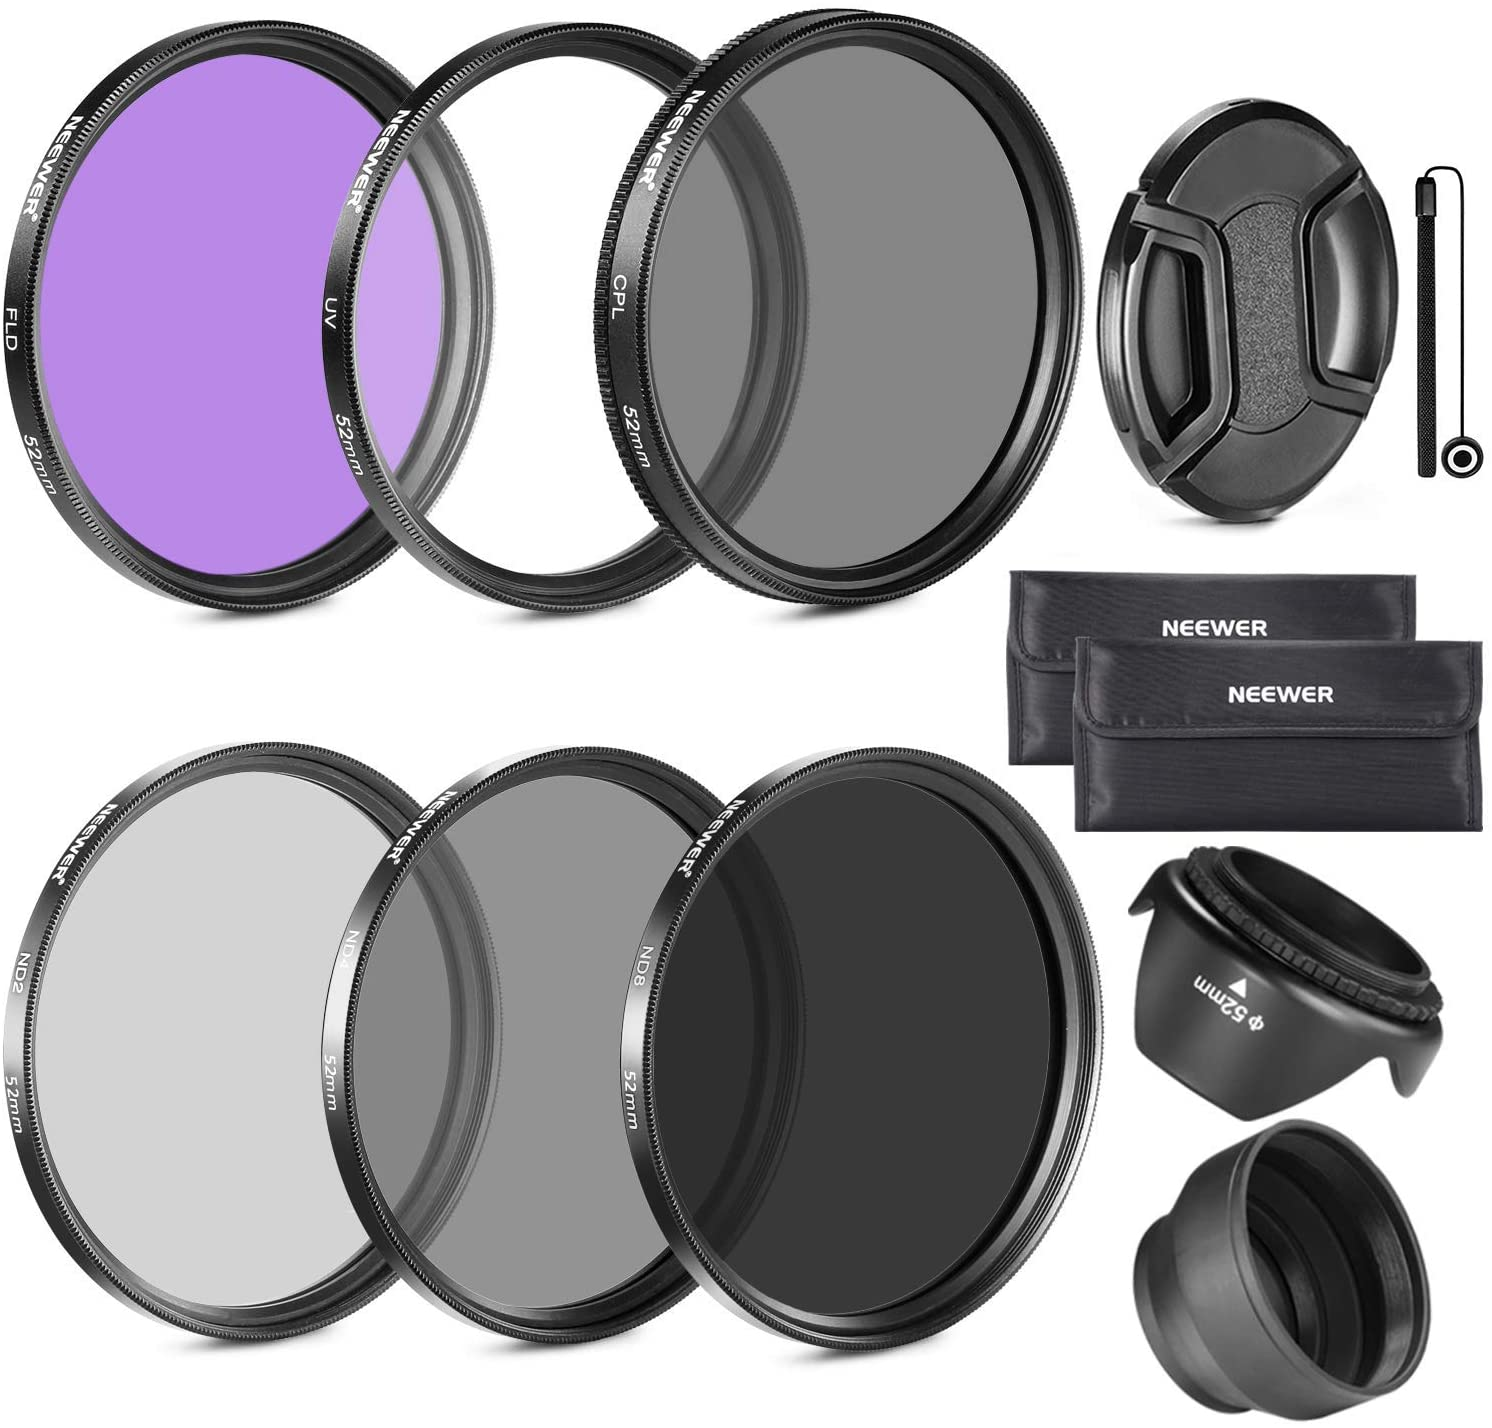 Neewer 77MM Lens Filter Kit: UV, CPL, FLD, ND2, ND4, ND8 and Lens Hood, Lens Cap for CANON 24-105MM, 10-22MM, 17-40MM and NIKON 28-300 Zoom Lenses